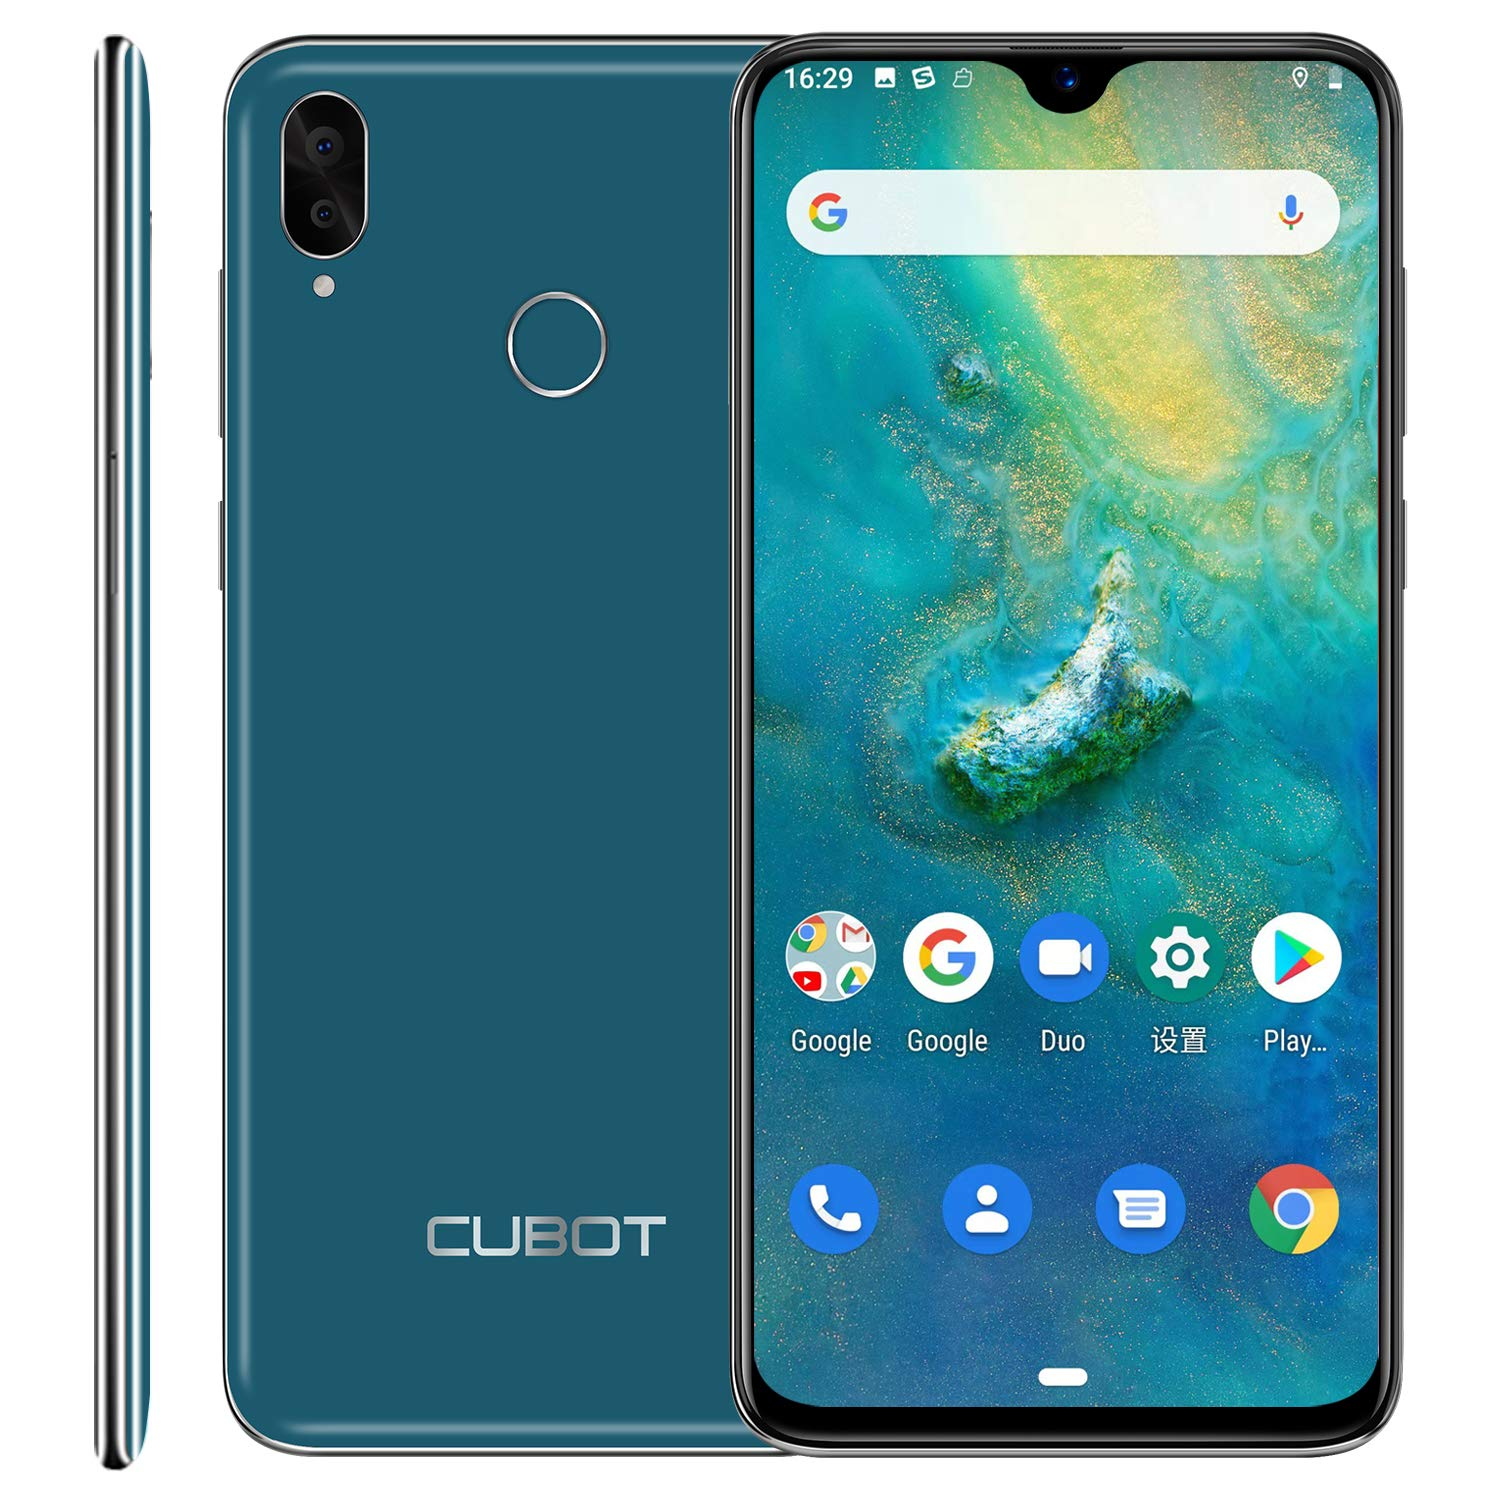 CUBOT R15 Pro 4G SIM Free Moible Phone, 6.2-Inch Dewdrop Full-screen Smartphone Unlocked, Android 9.0 for £79.99